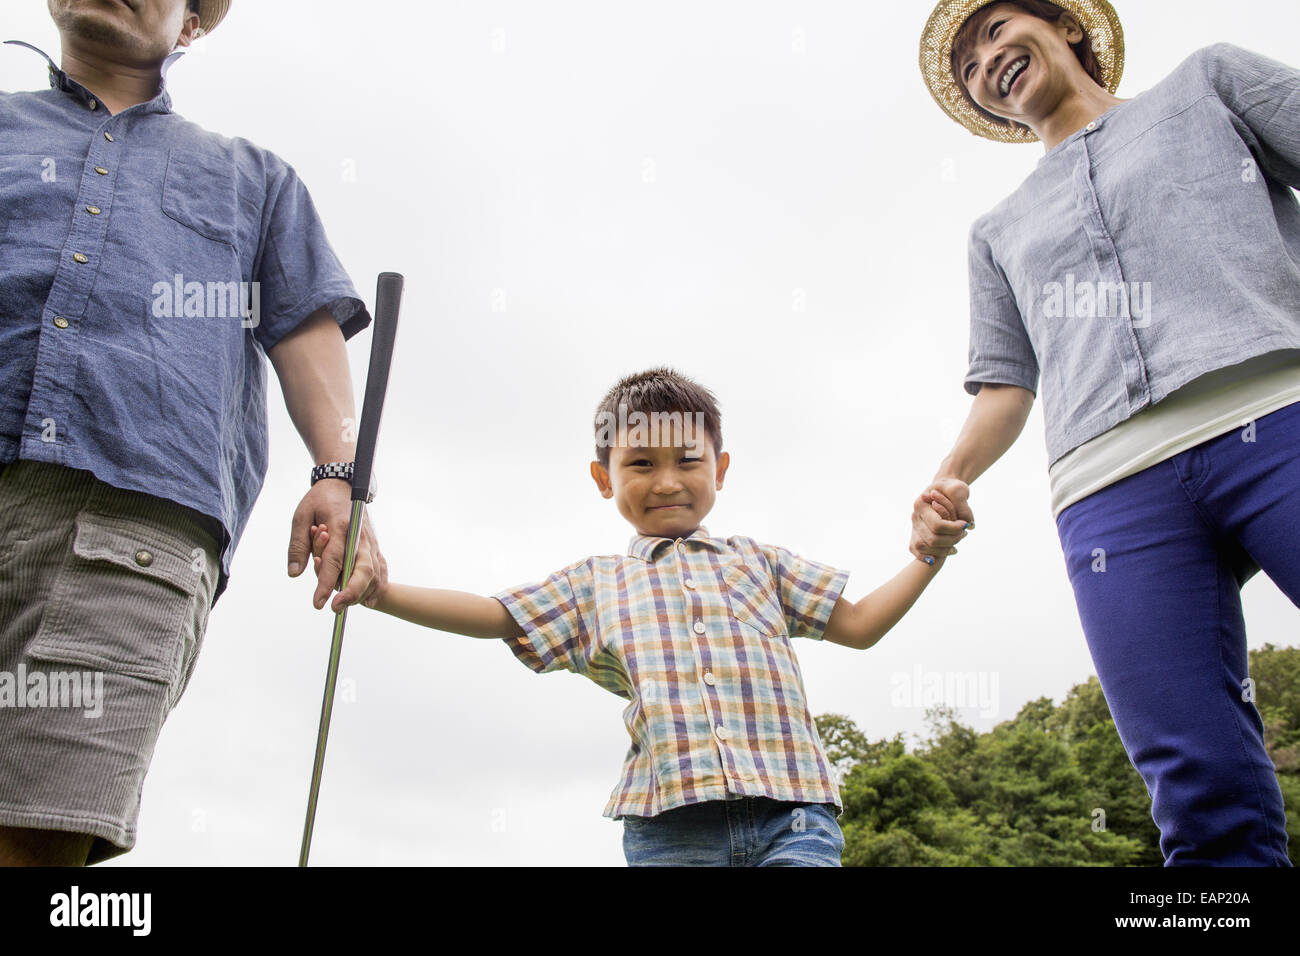 Family on a golf course. Two parents and a boy holding hands. - Stock Image